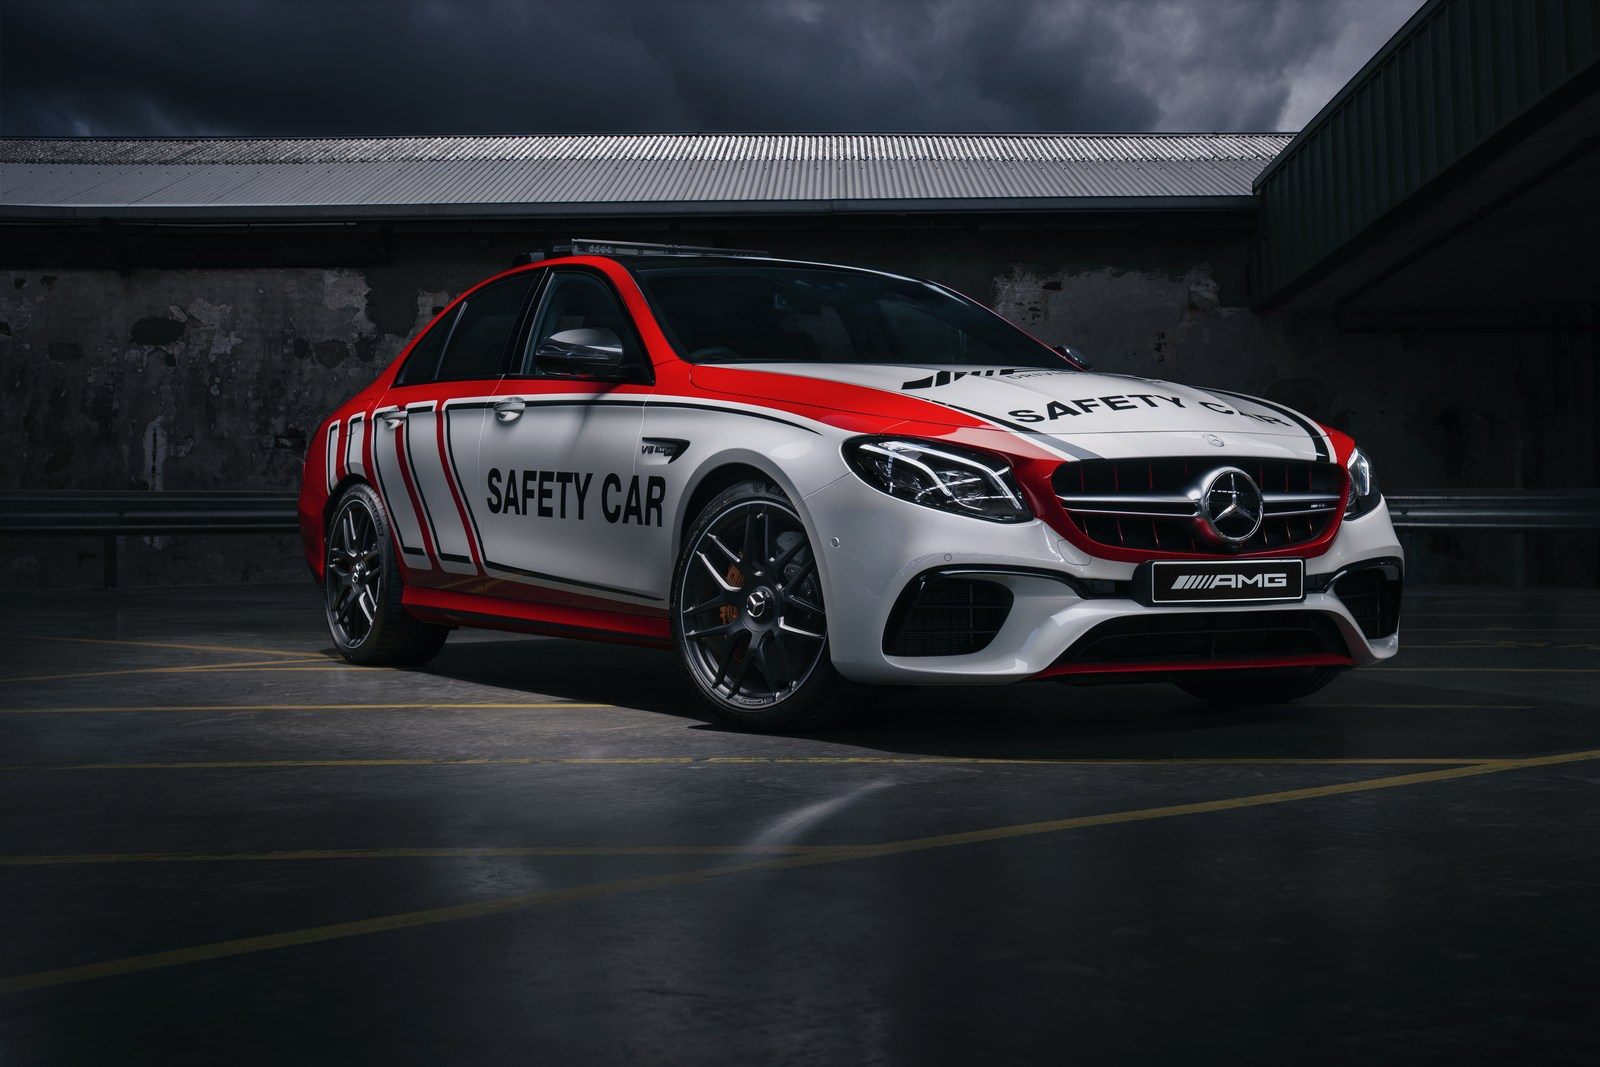 Mercedes Amg E63 S 4matic Safety Car Set To Patrol Mount